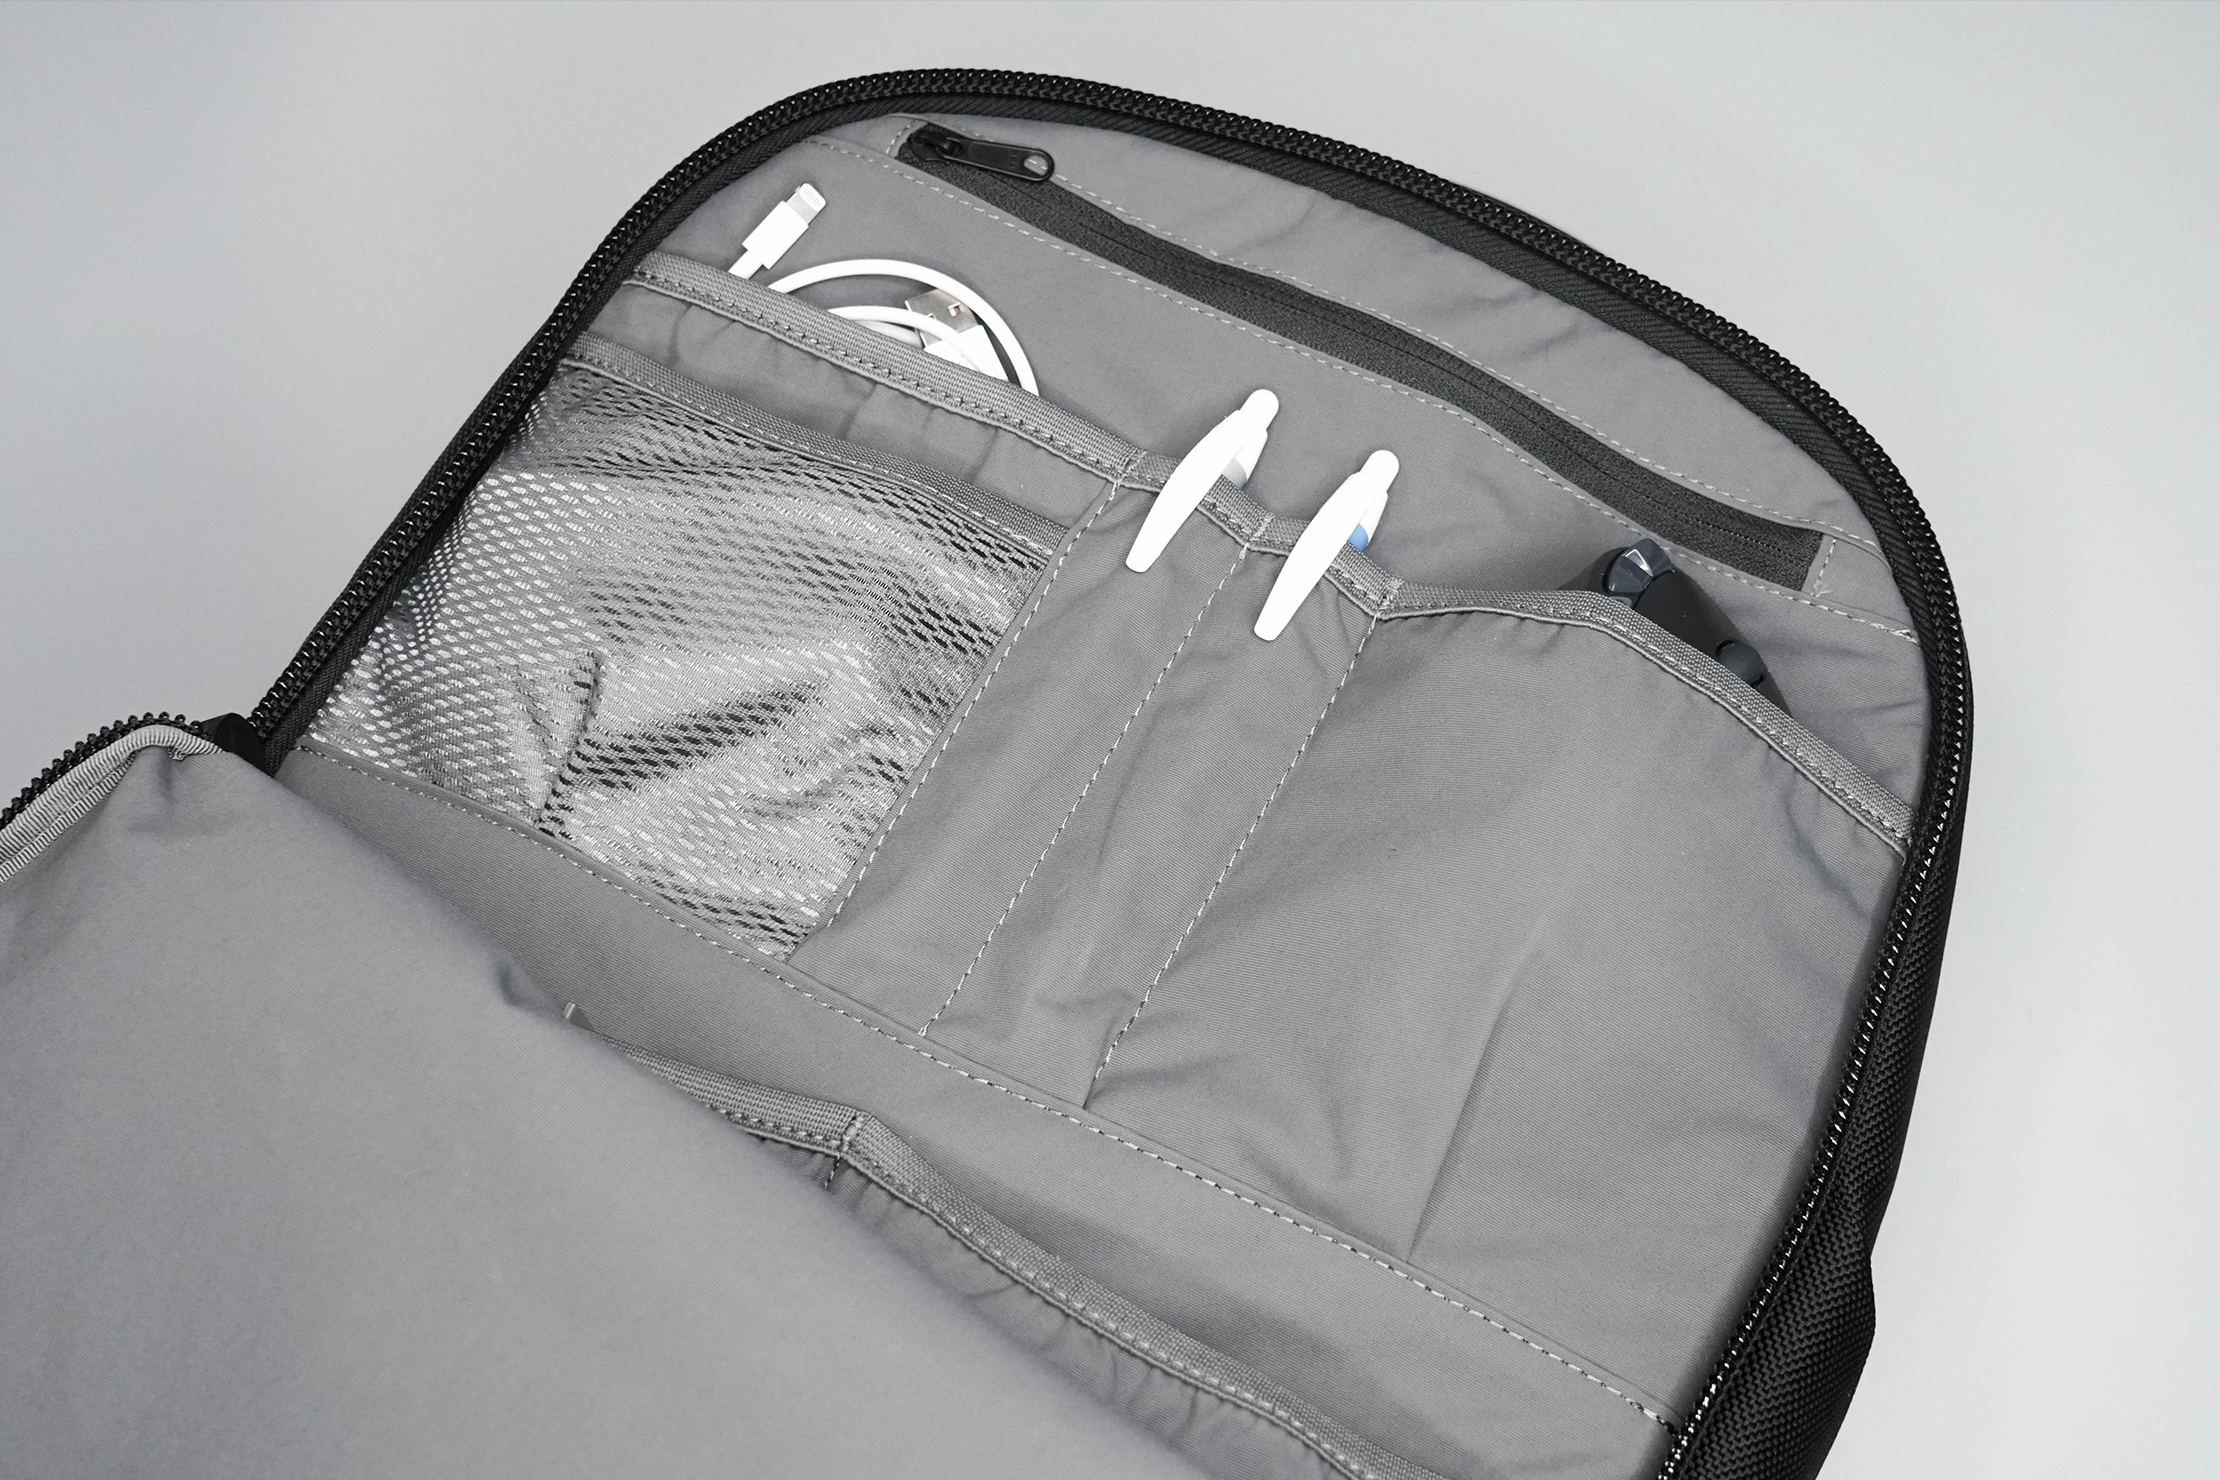 Aer Day Pack 2 Front Compartment Liner Pockets